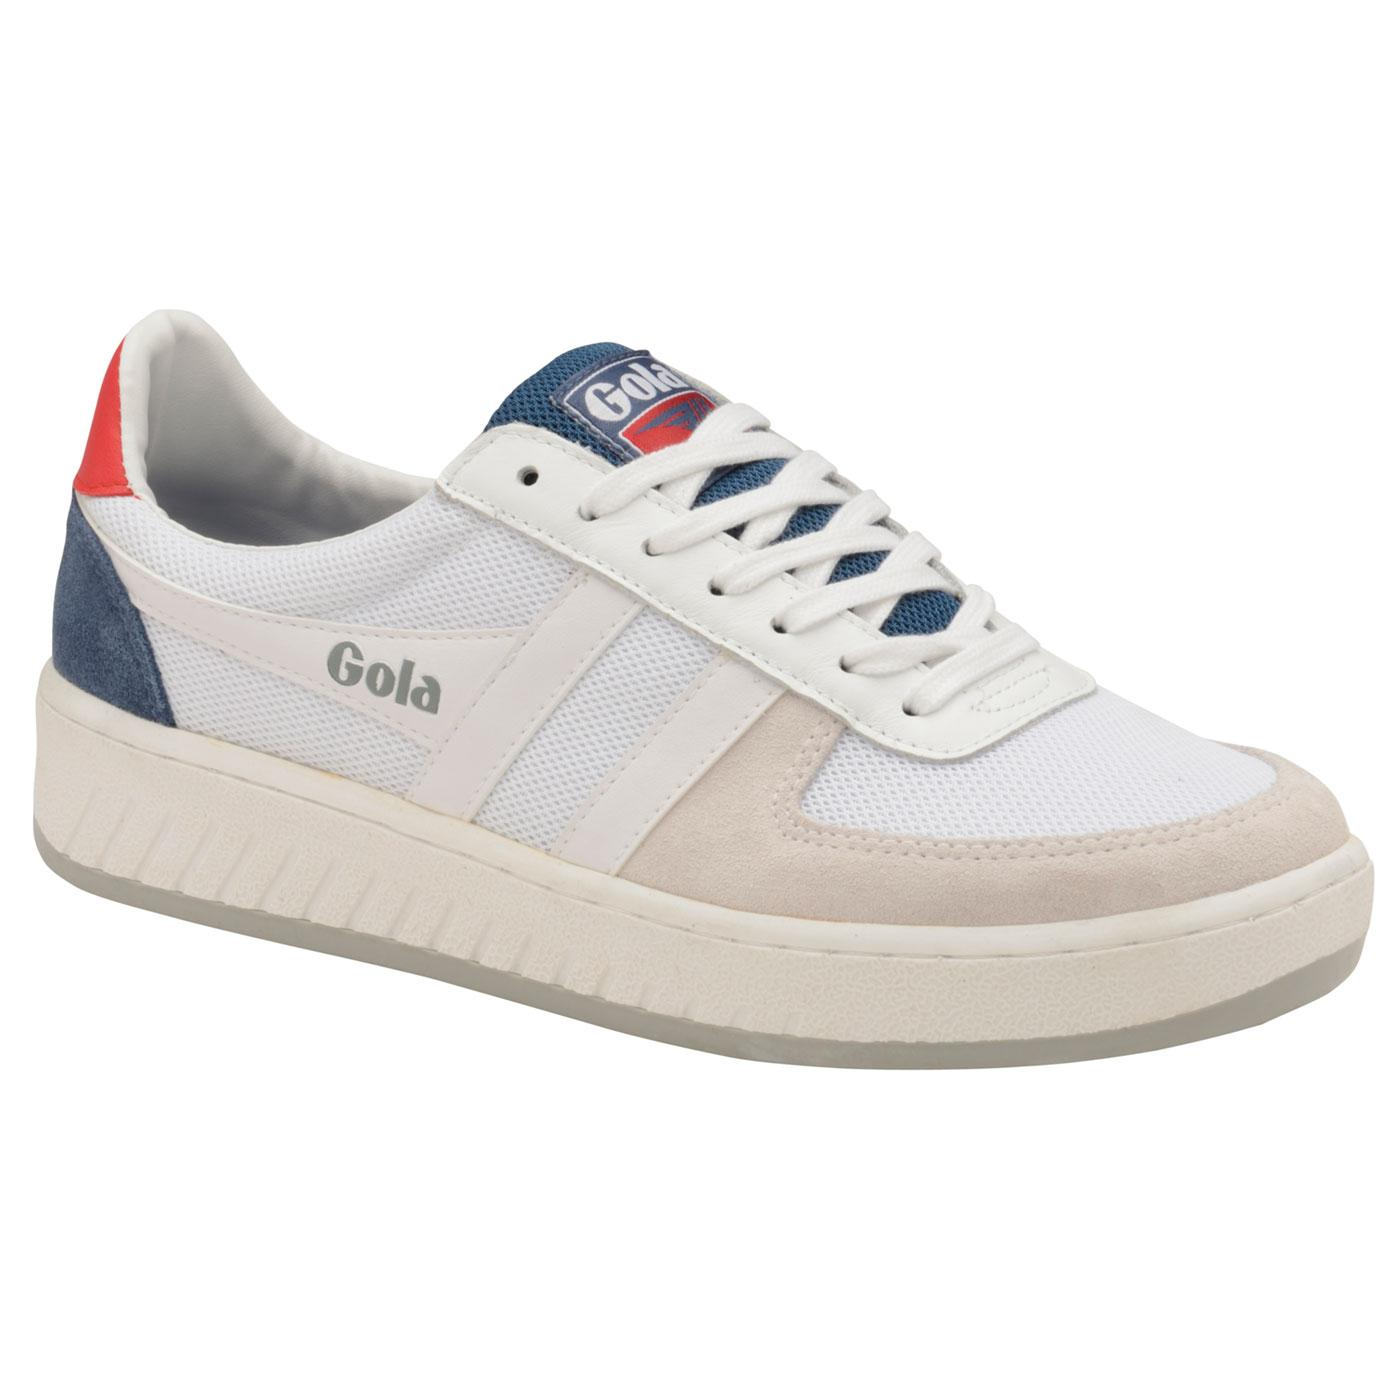 Grandslam Mesh GOLA Men's Retro Court Trainers WBR